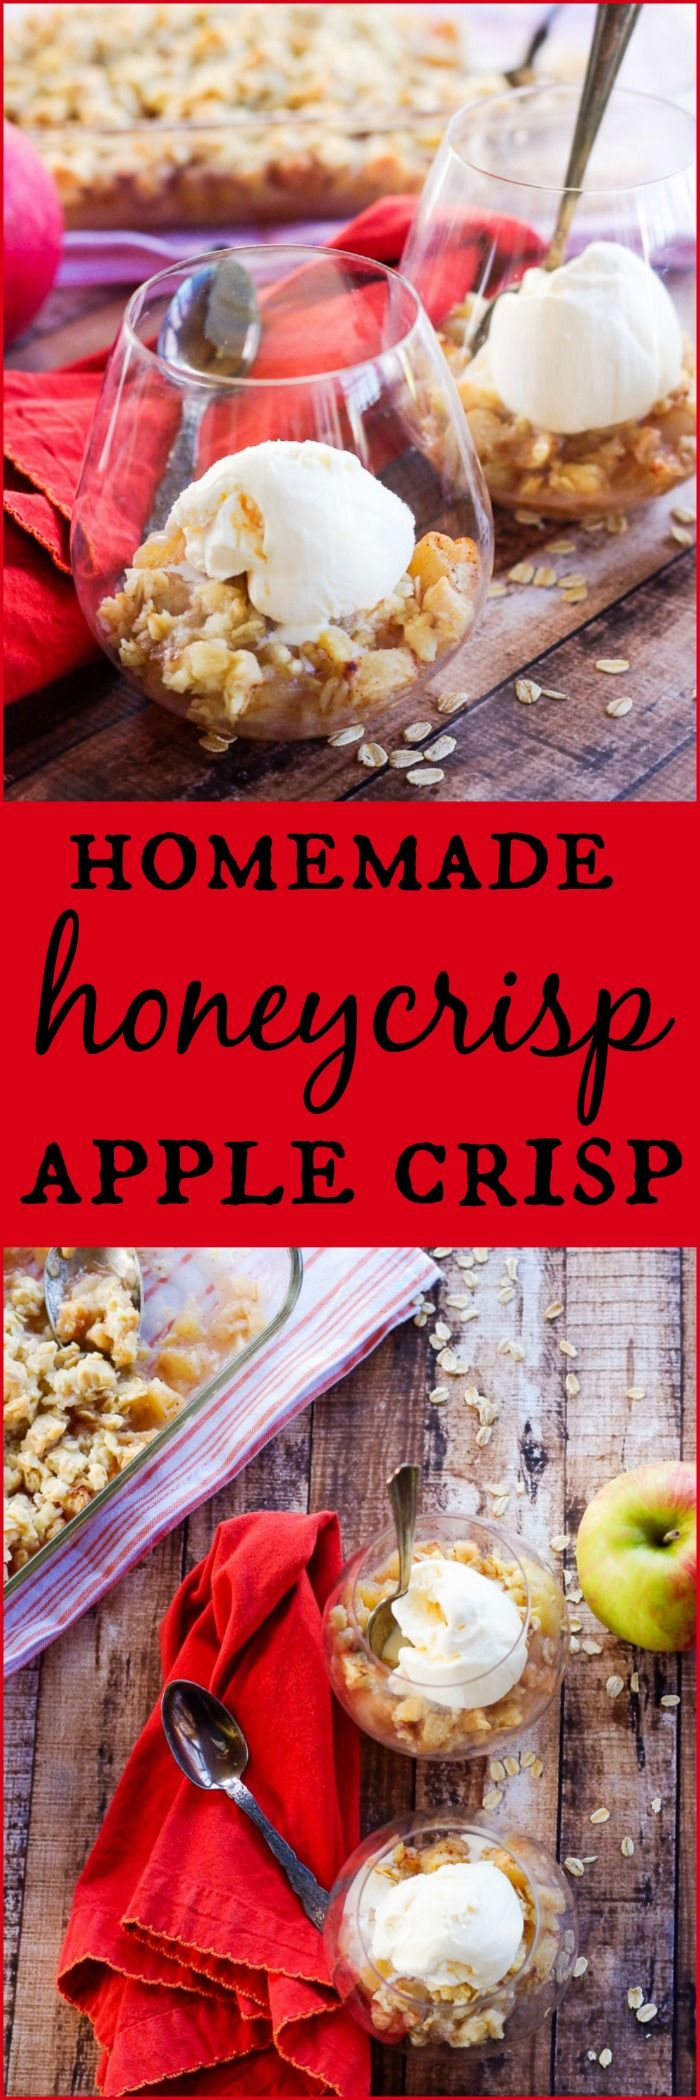 Homemade Honeycrisp Apple Crisp | www.homeandplate.com | The apples are warm and soft and the topping is sweet and crunchy. Enjoy this delicious fall dessert today.